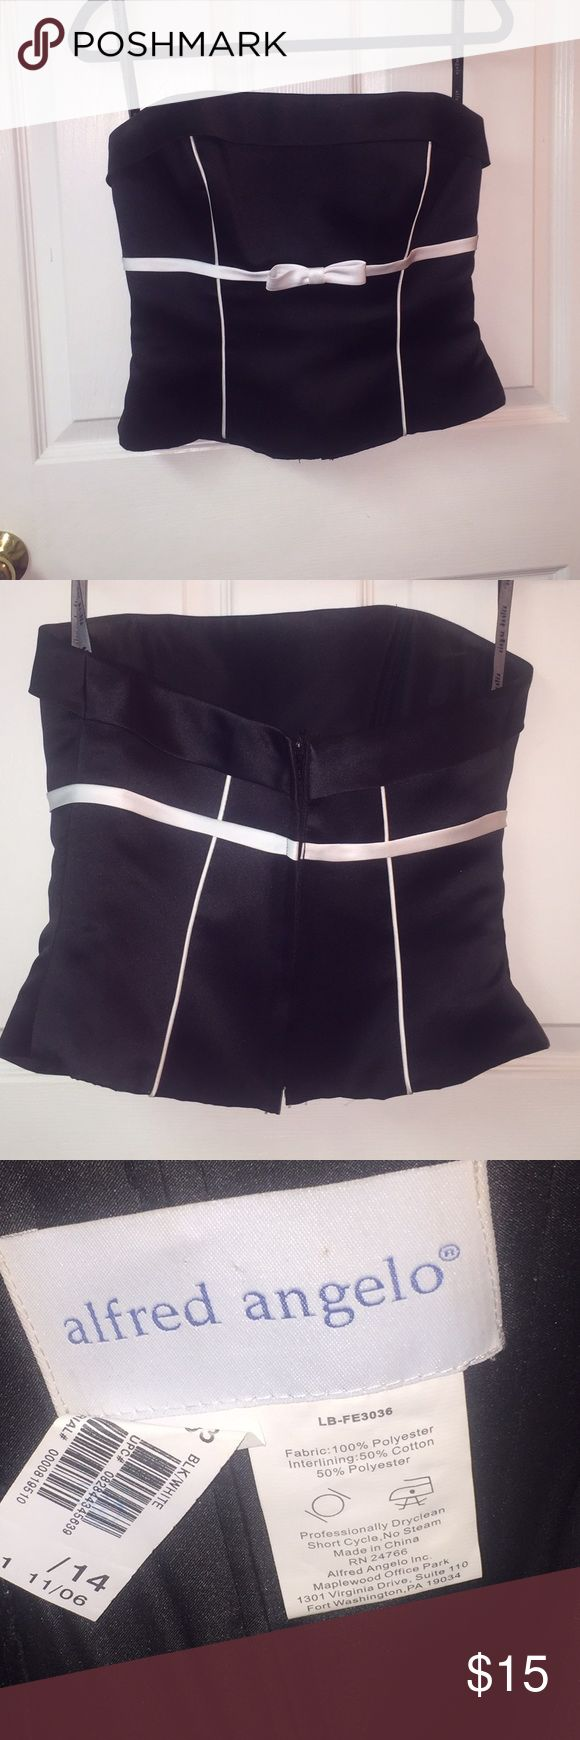 Alfred Angelo black strapless bustier top EUC black polyester satin strapless bustier top with white accents. Alfred Angelo. Zipper in back. Boning. Really pretty top. Labeled size 14 but is not stretchy and has no give. Alfred Angelo Tops